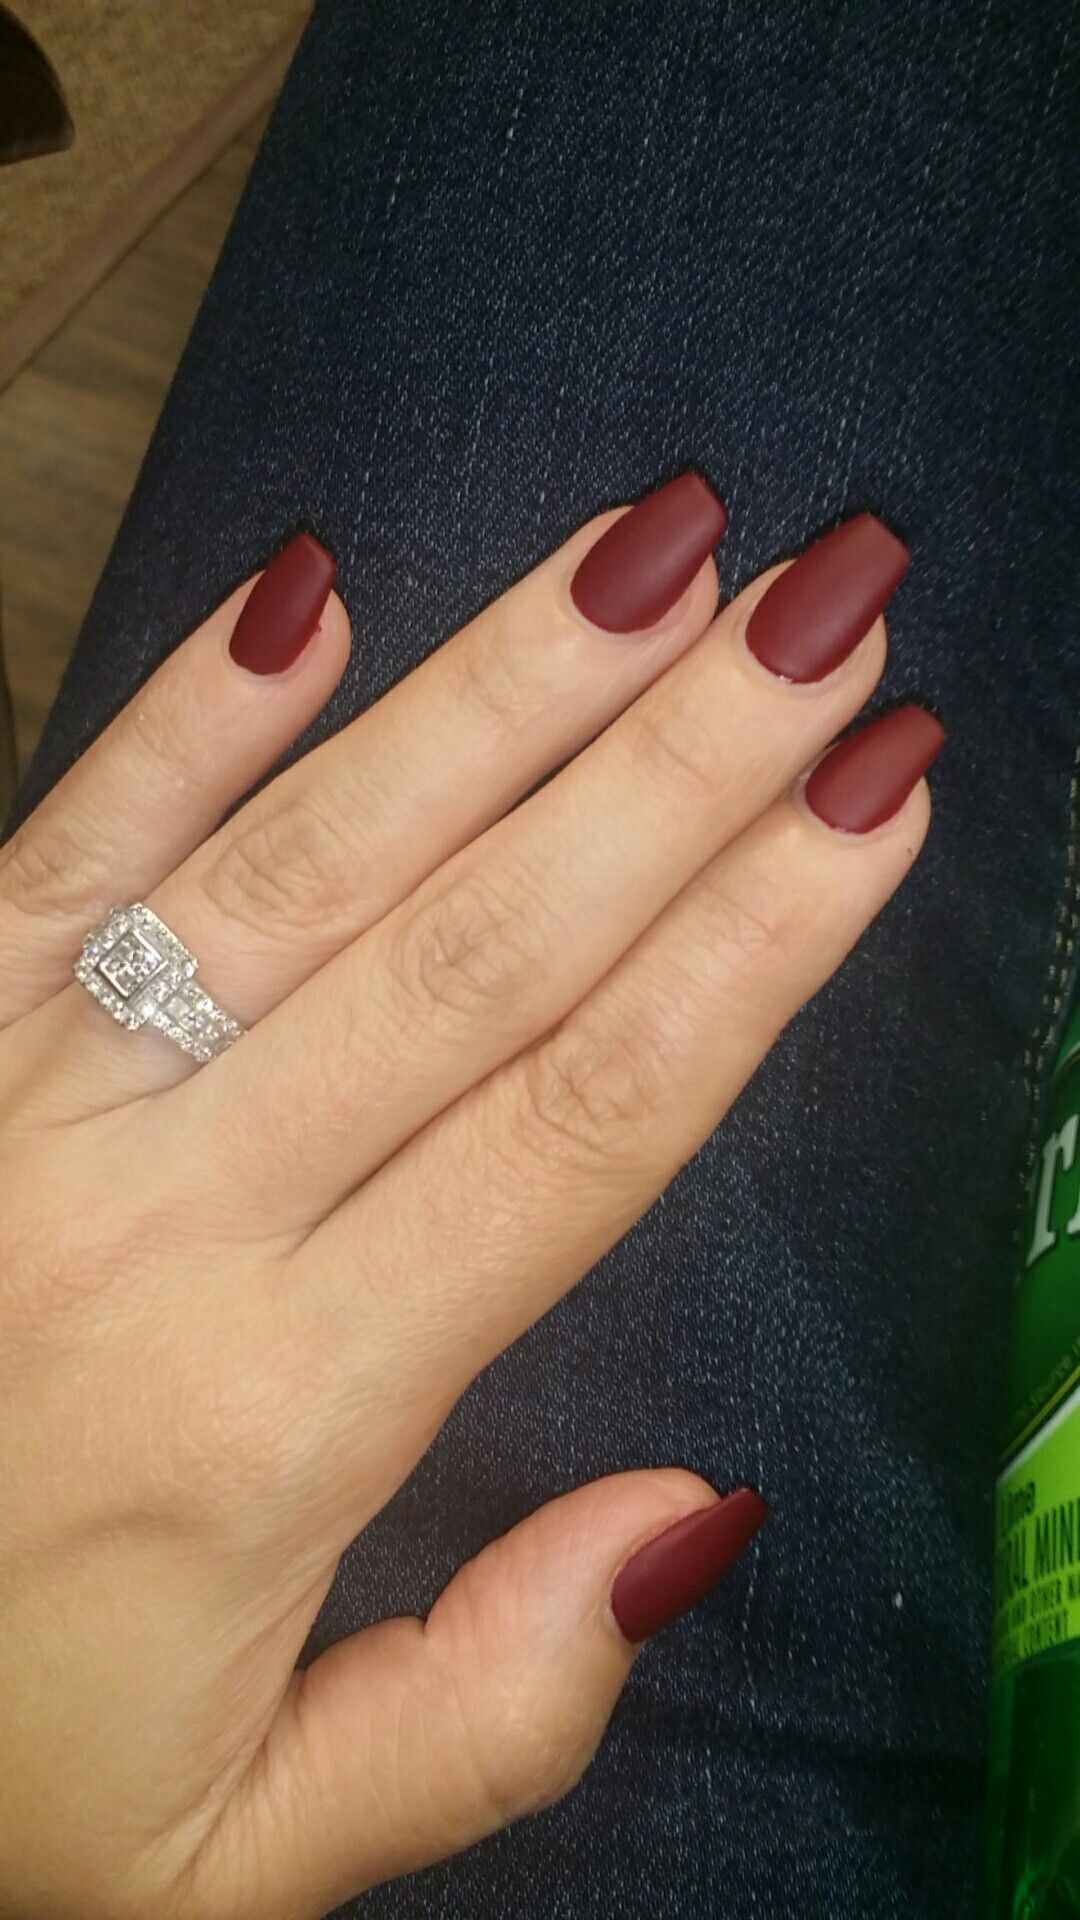 Wine Color Nails : color, nails, Lovely, Coffin, Nails, Matte, Color, Nails,, Colors